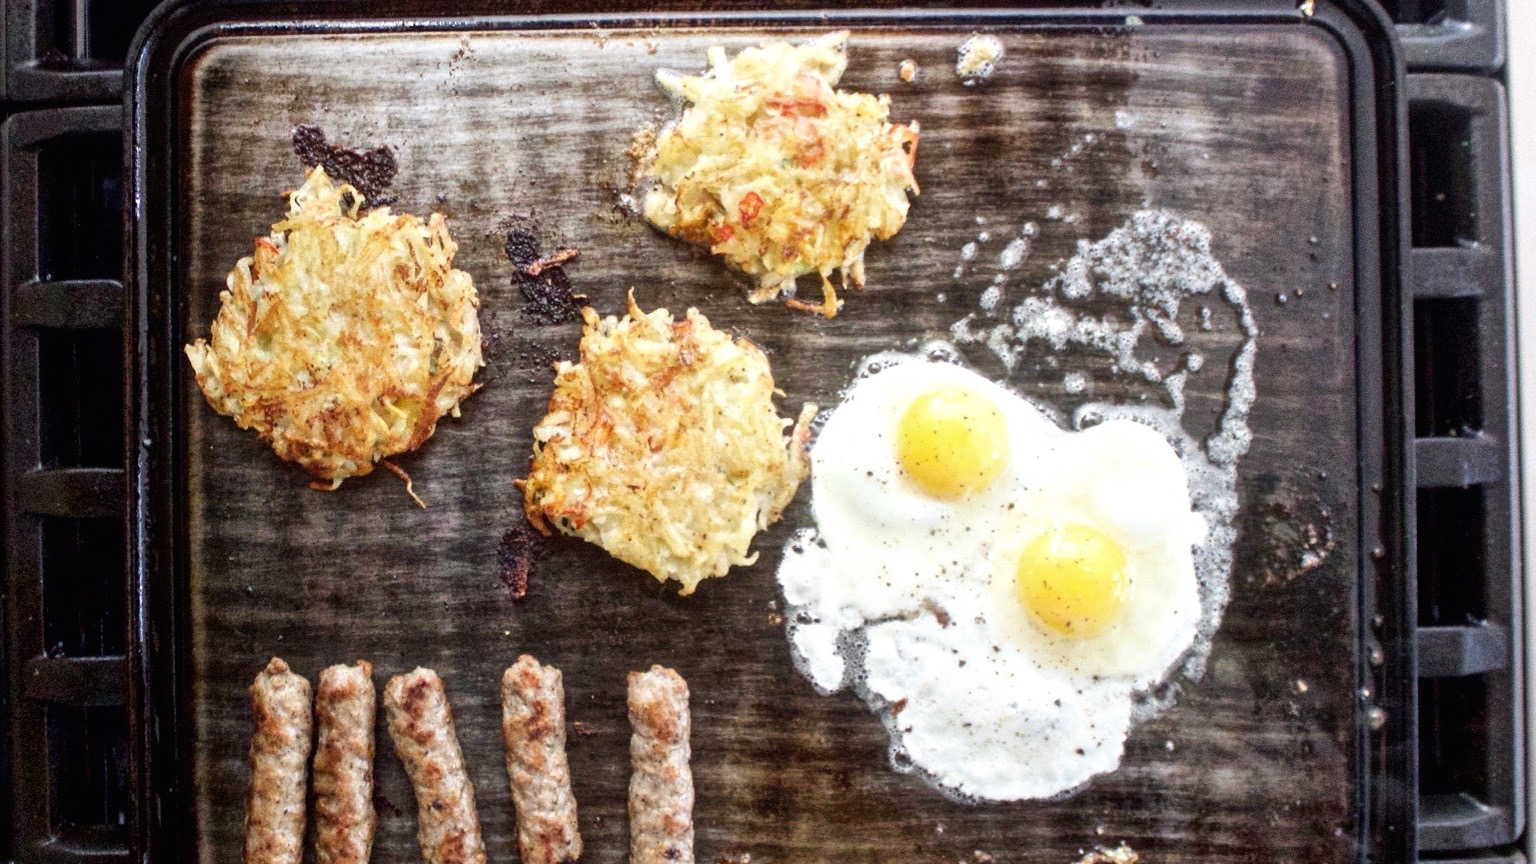 breakfast hash browns with eggs and sausage